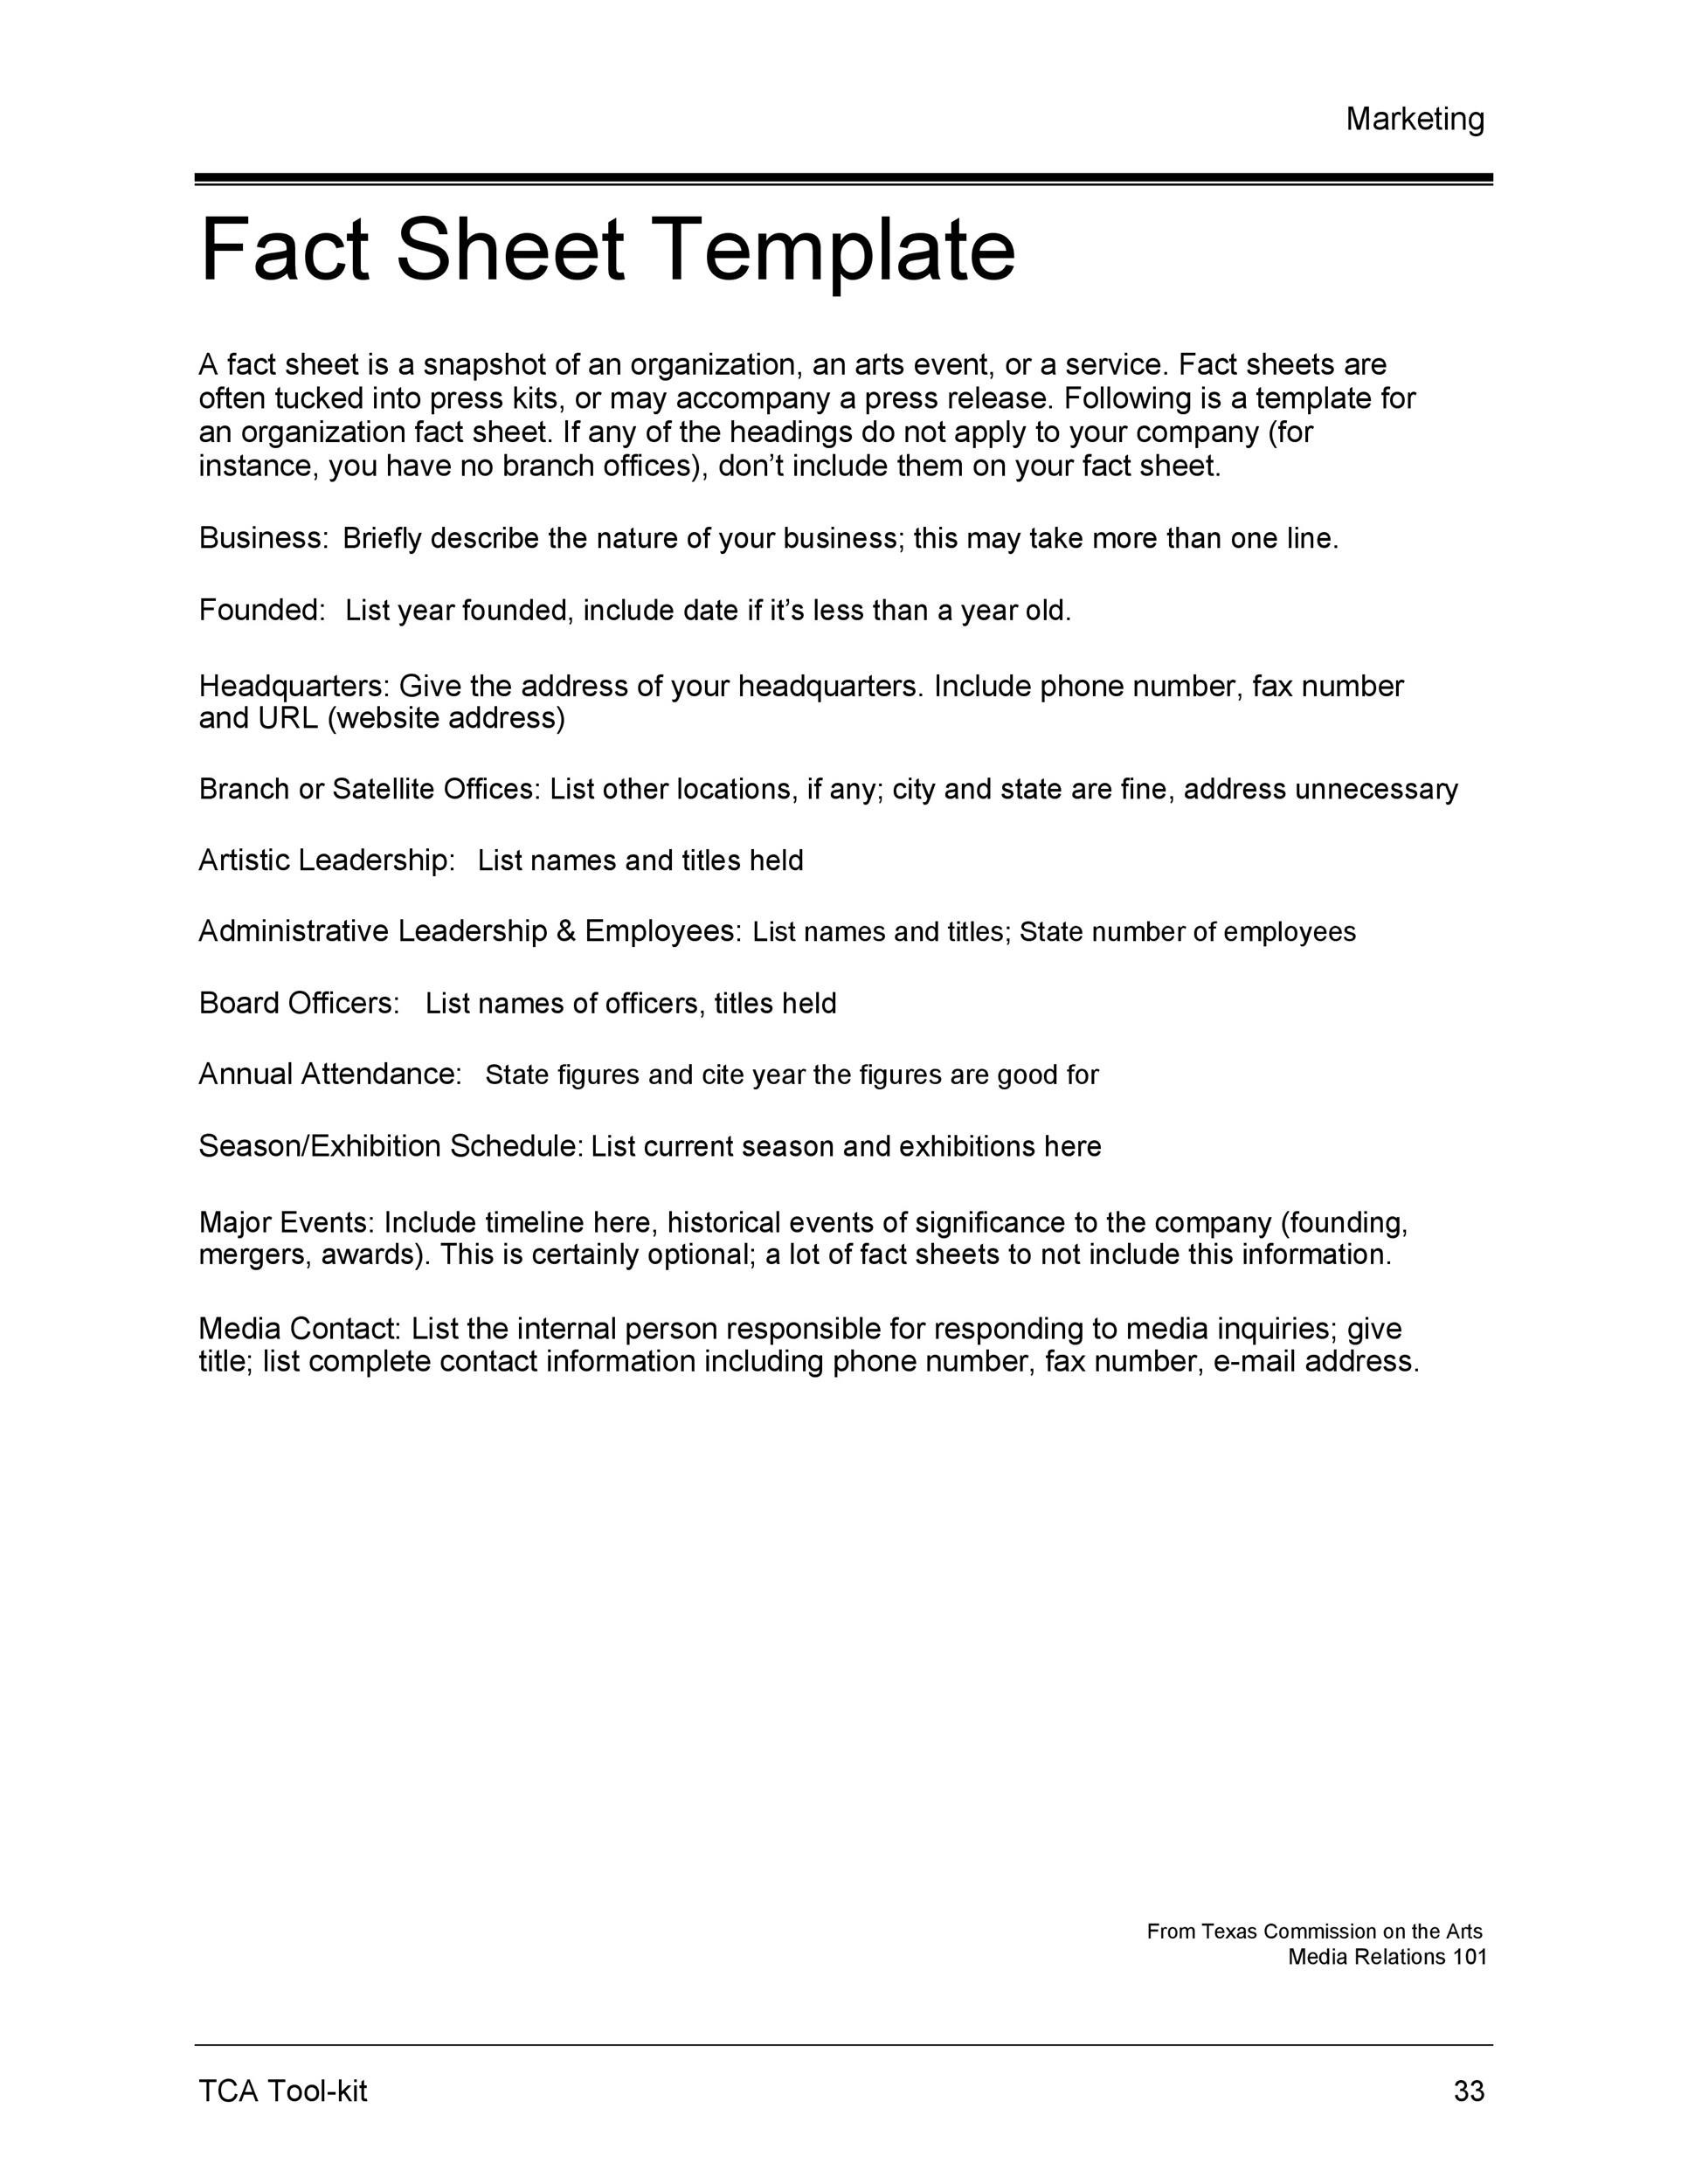 60 Beautiful Fact Sheet Templates Examples And Designs